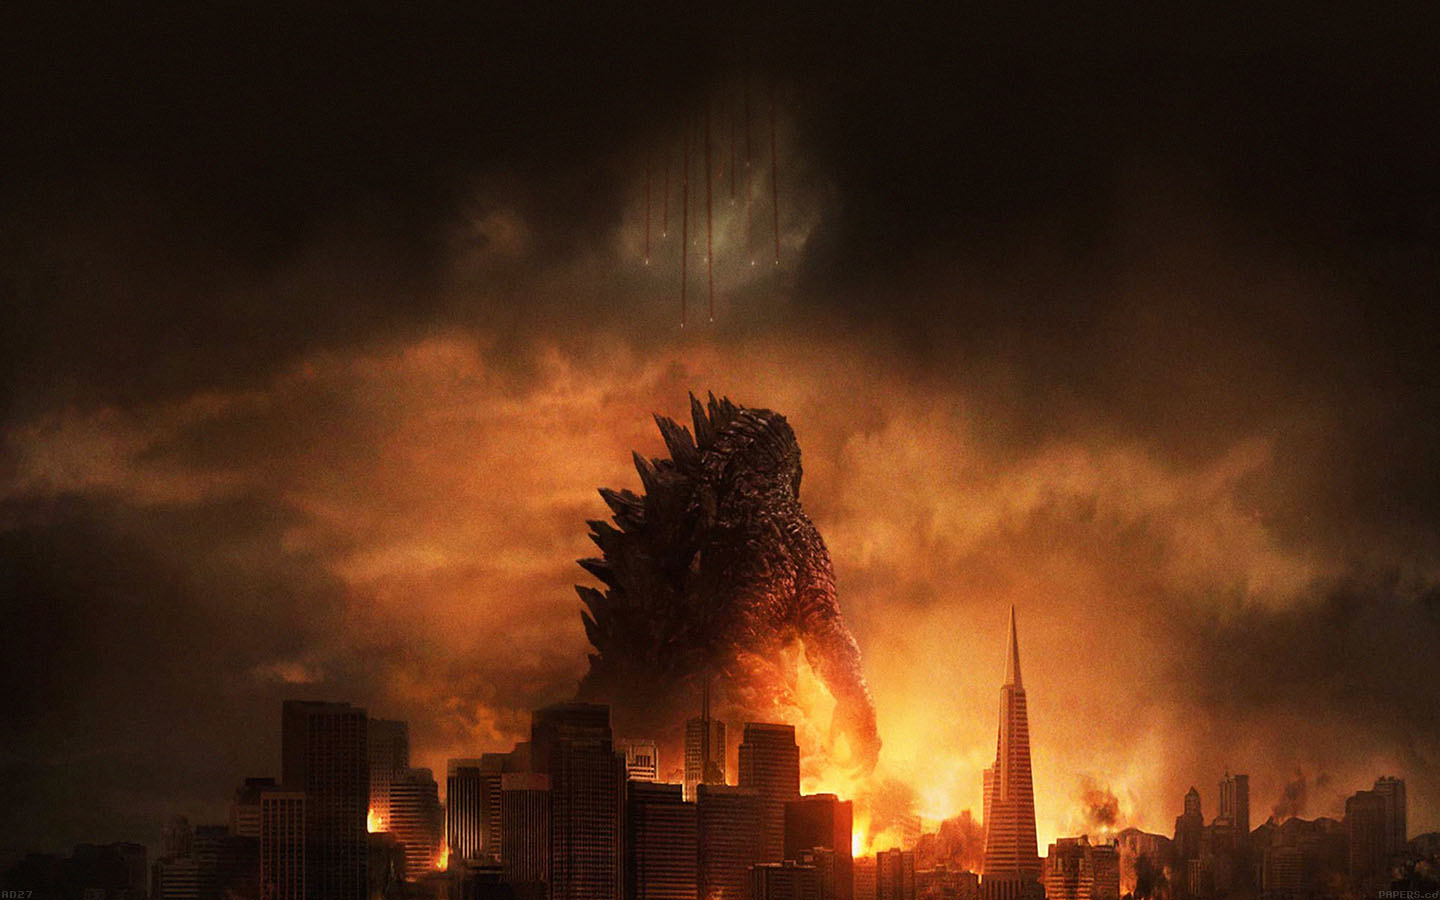 ad27-godzilla-poster-film - Papers.co